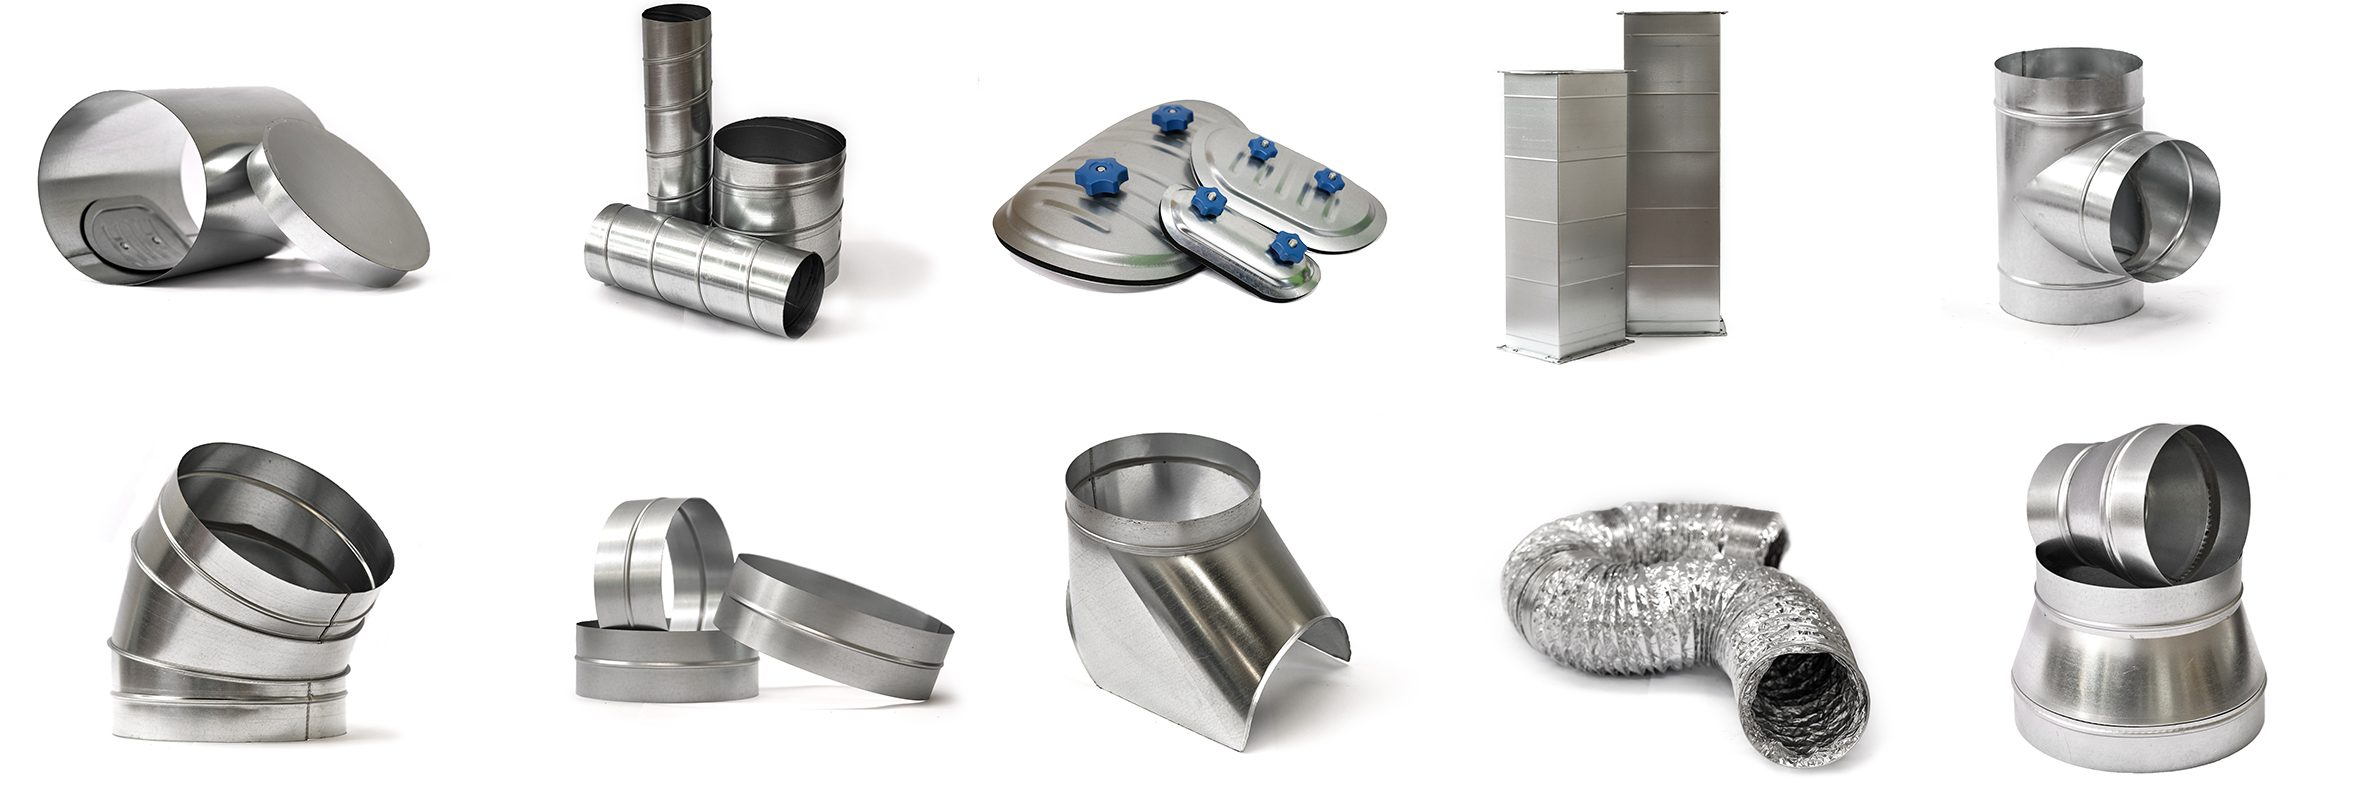 ductwork ducting manufacturing